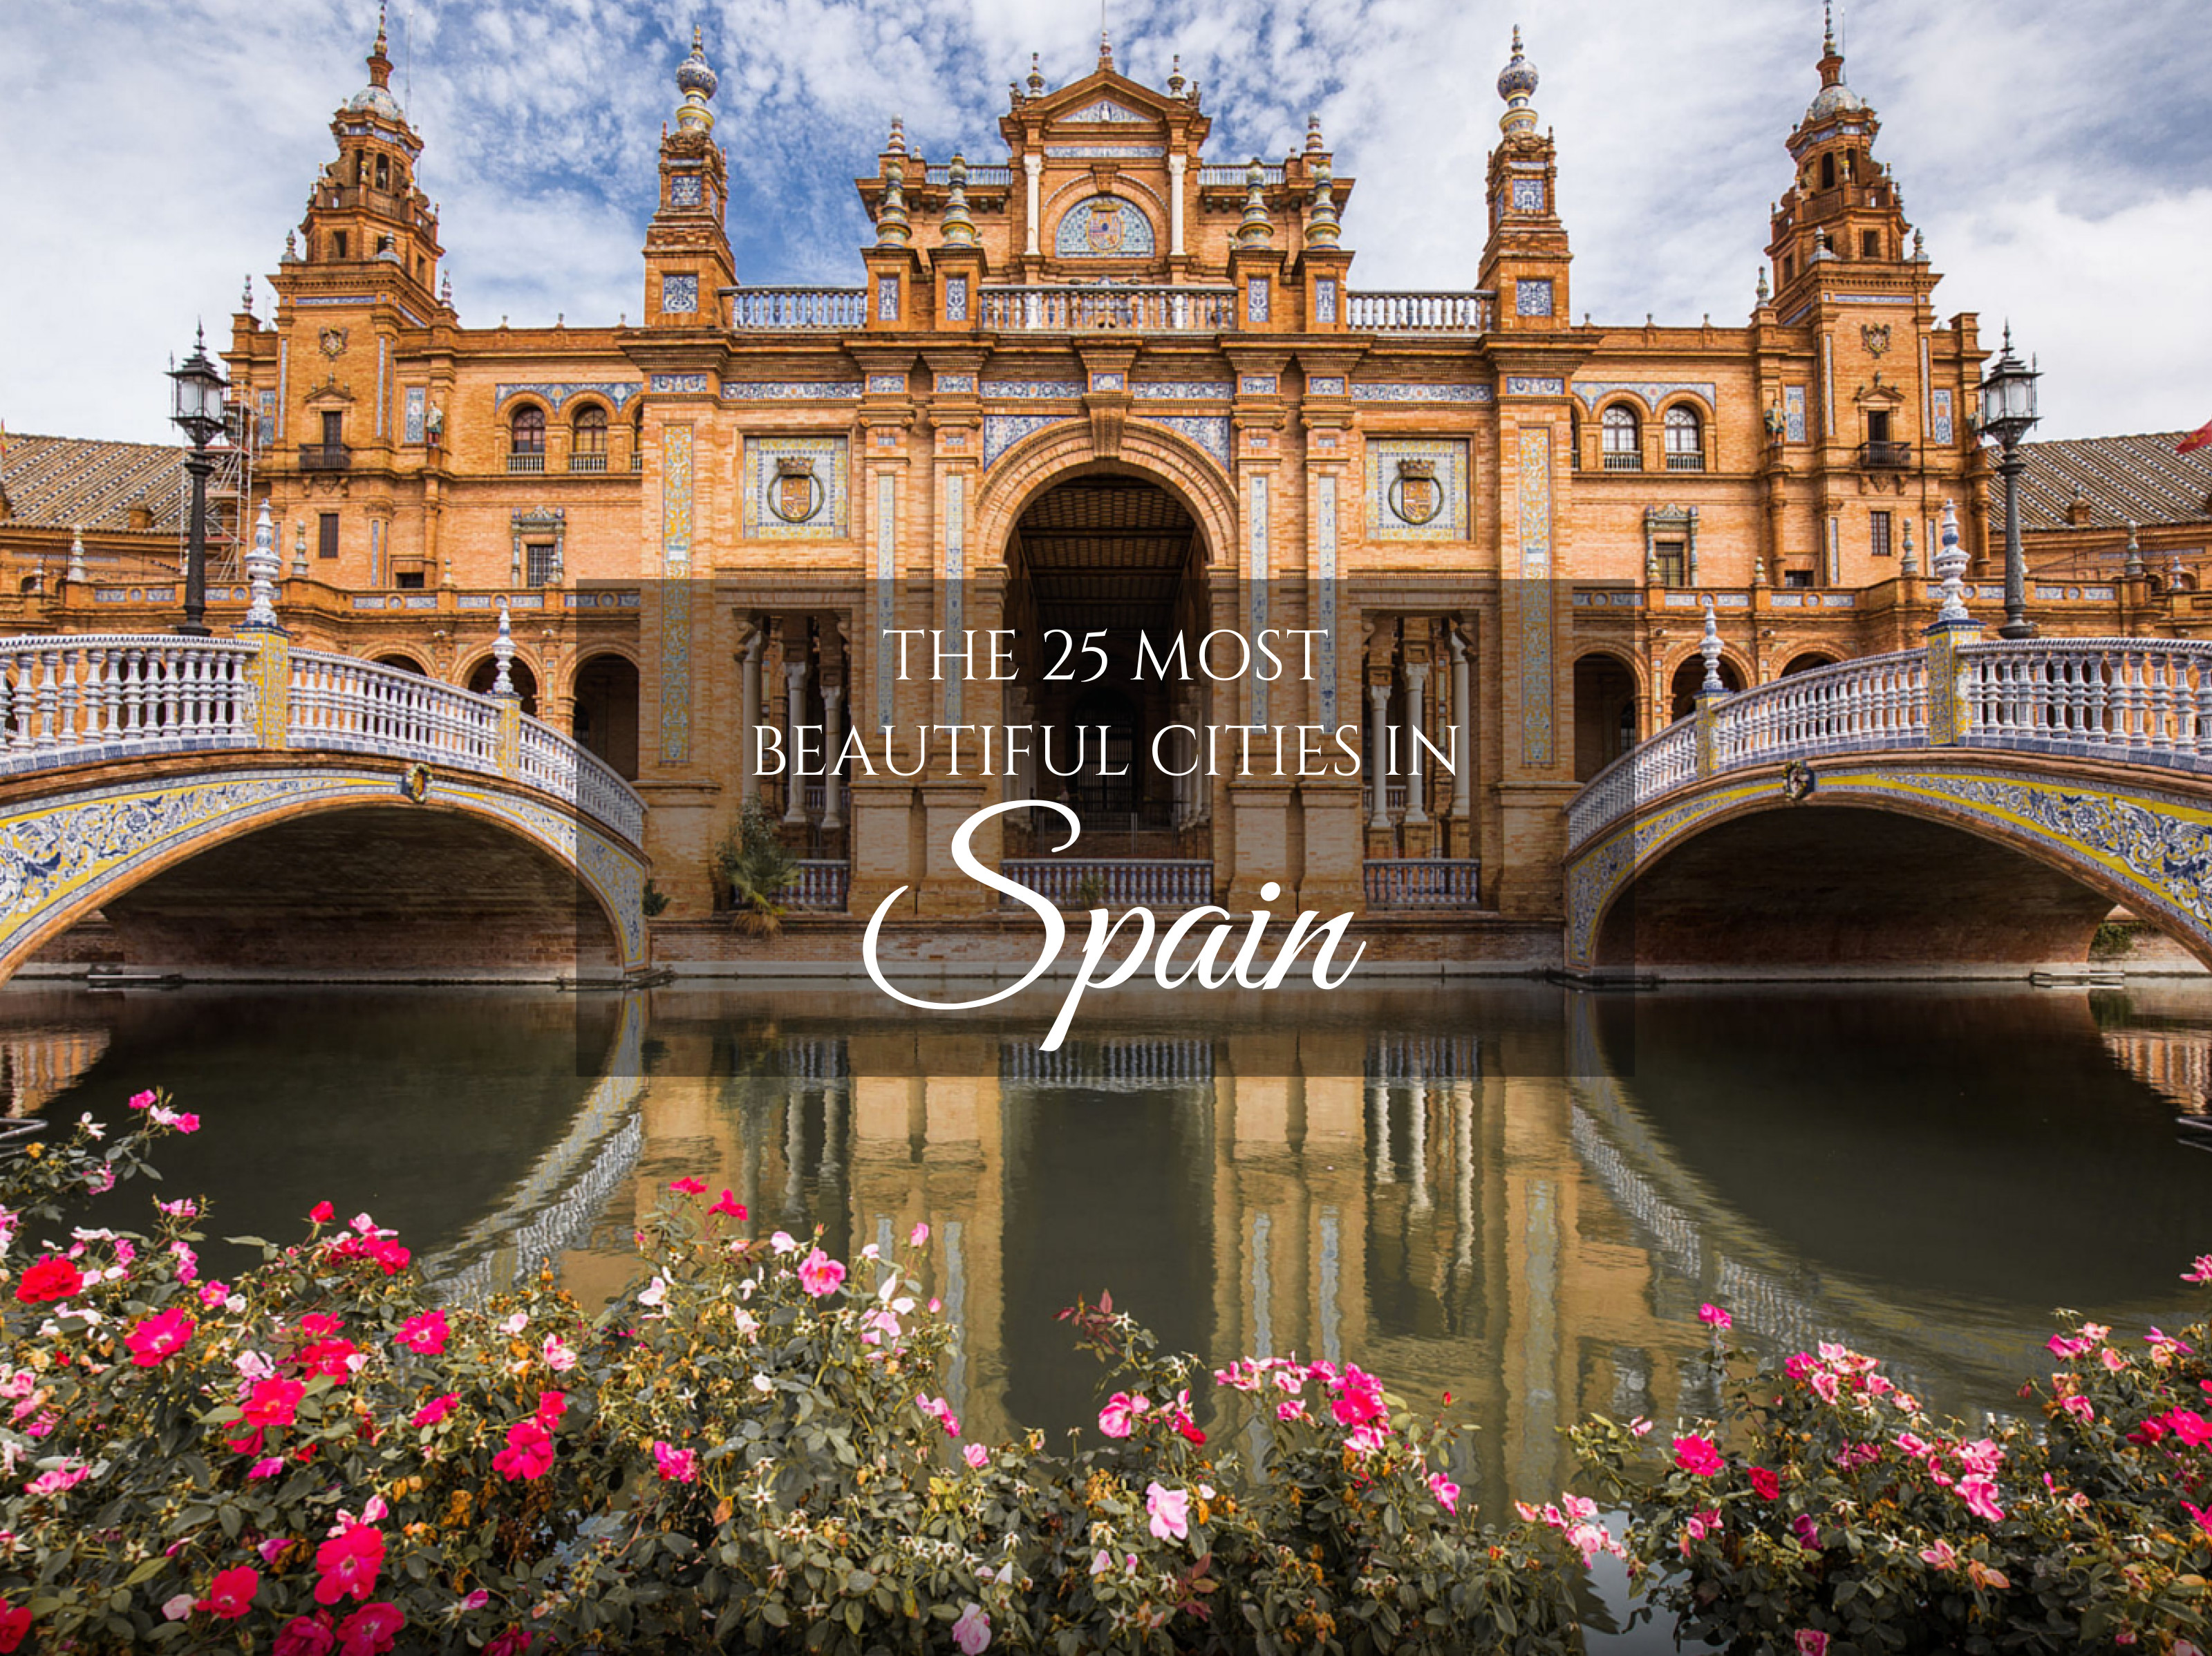 The 25 Most Beautiful Cities in Spai